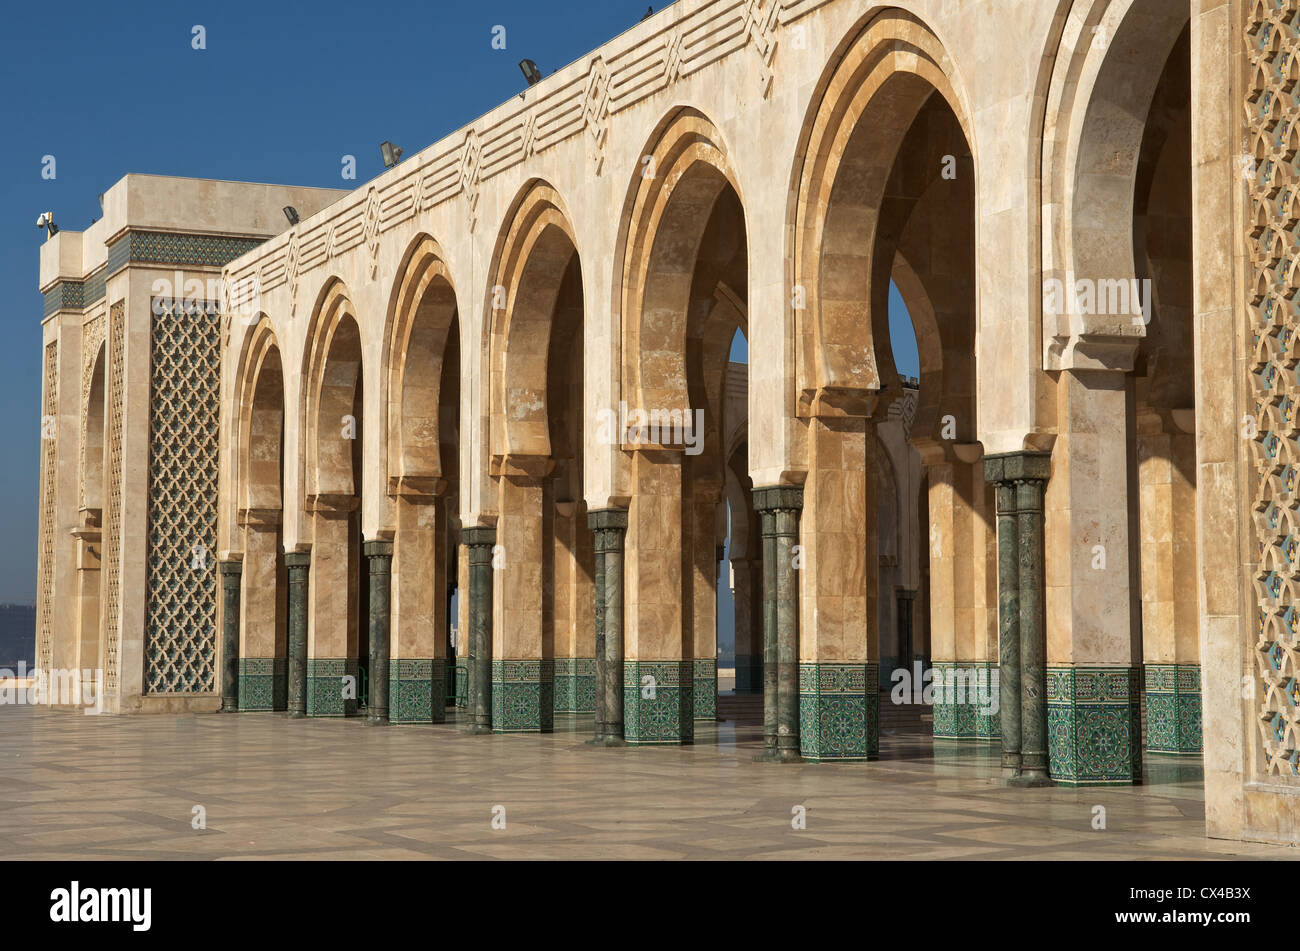 Arches at King Hassan II mosque in Casablanca, Morocco - Stock Image